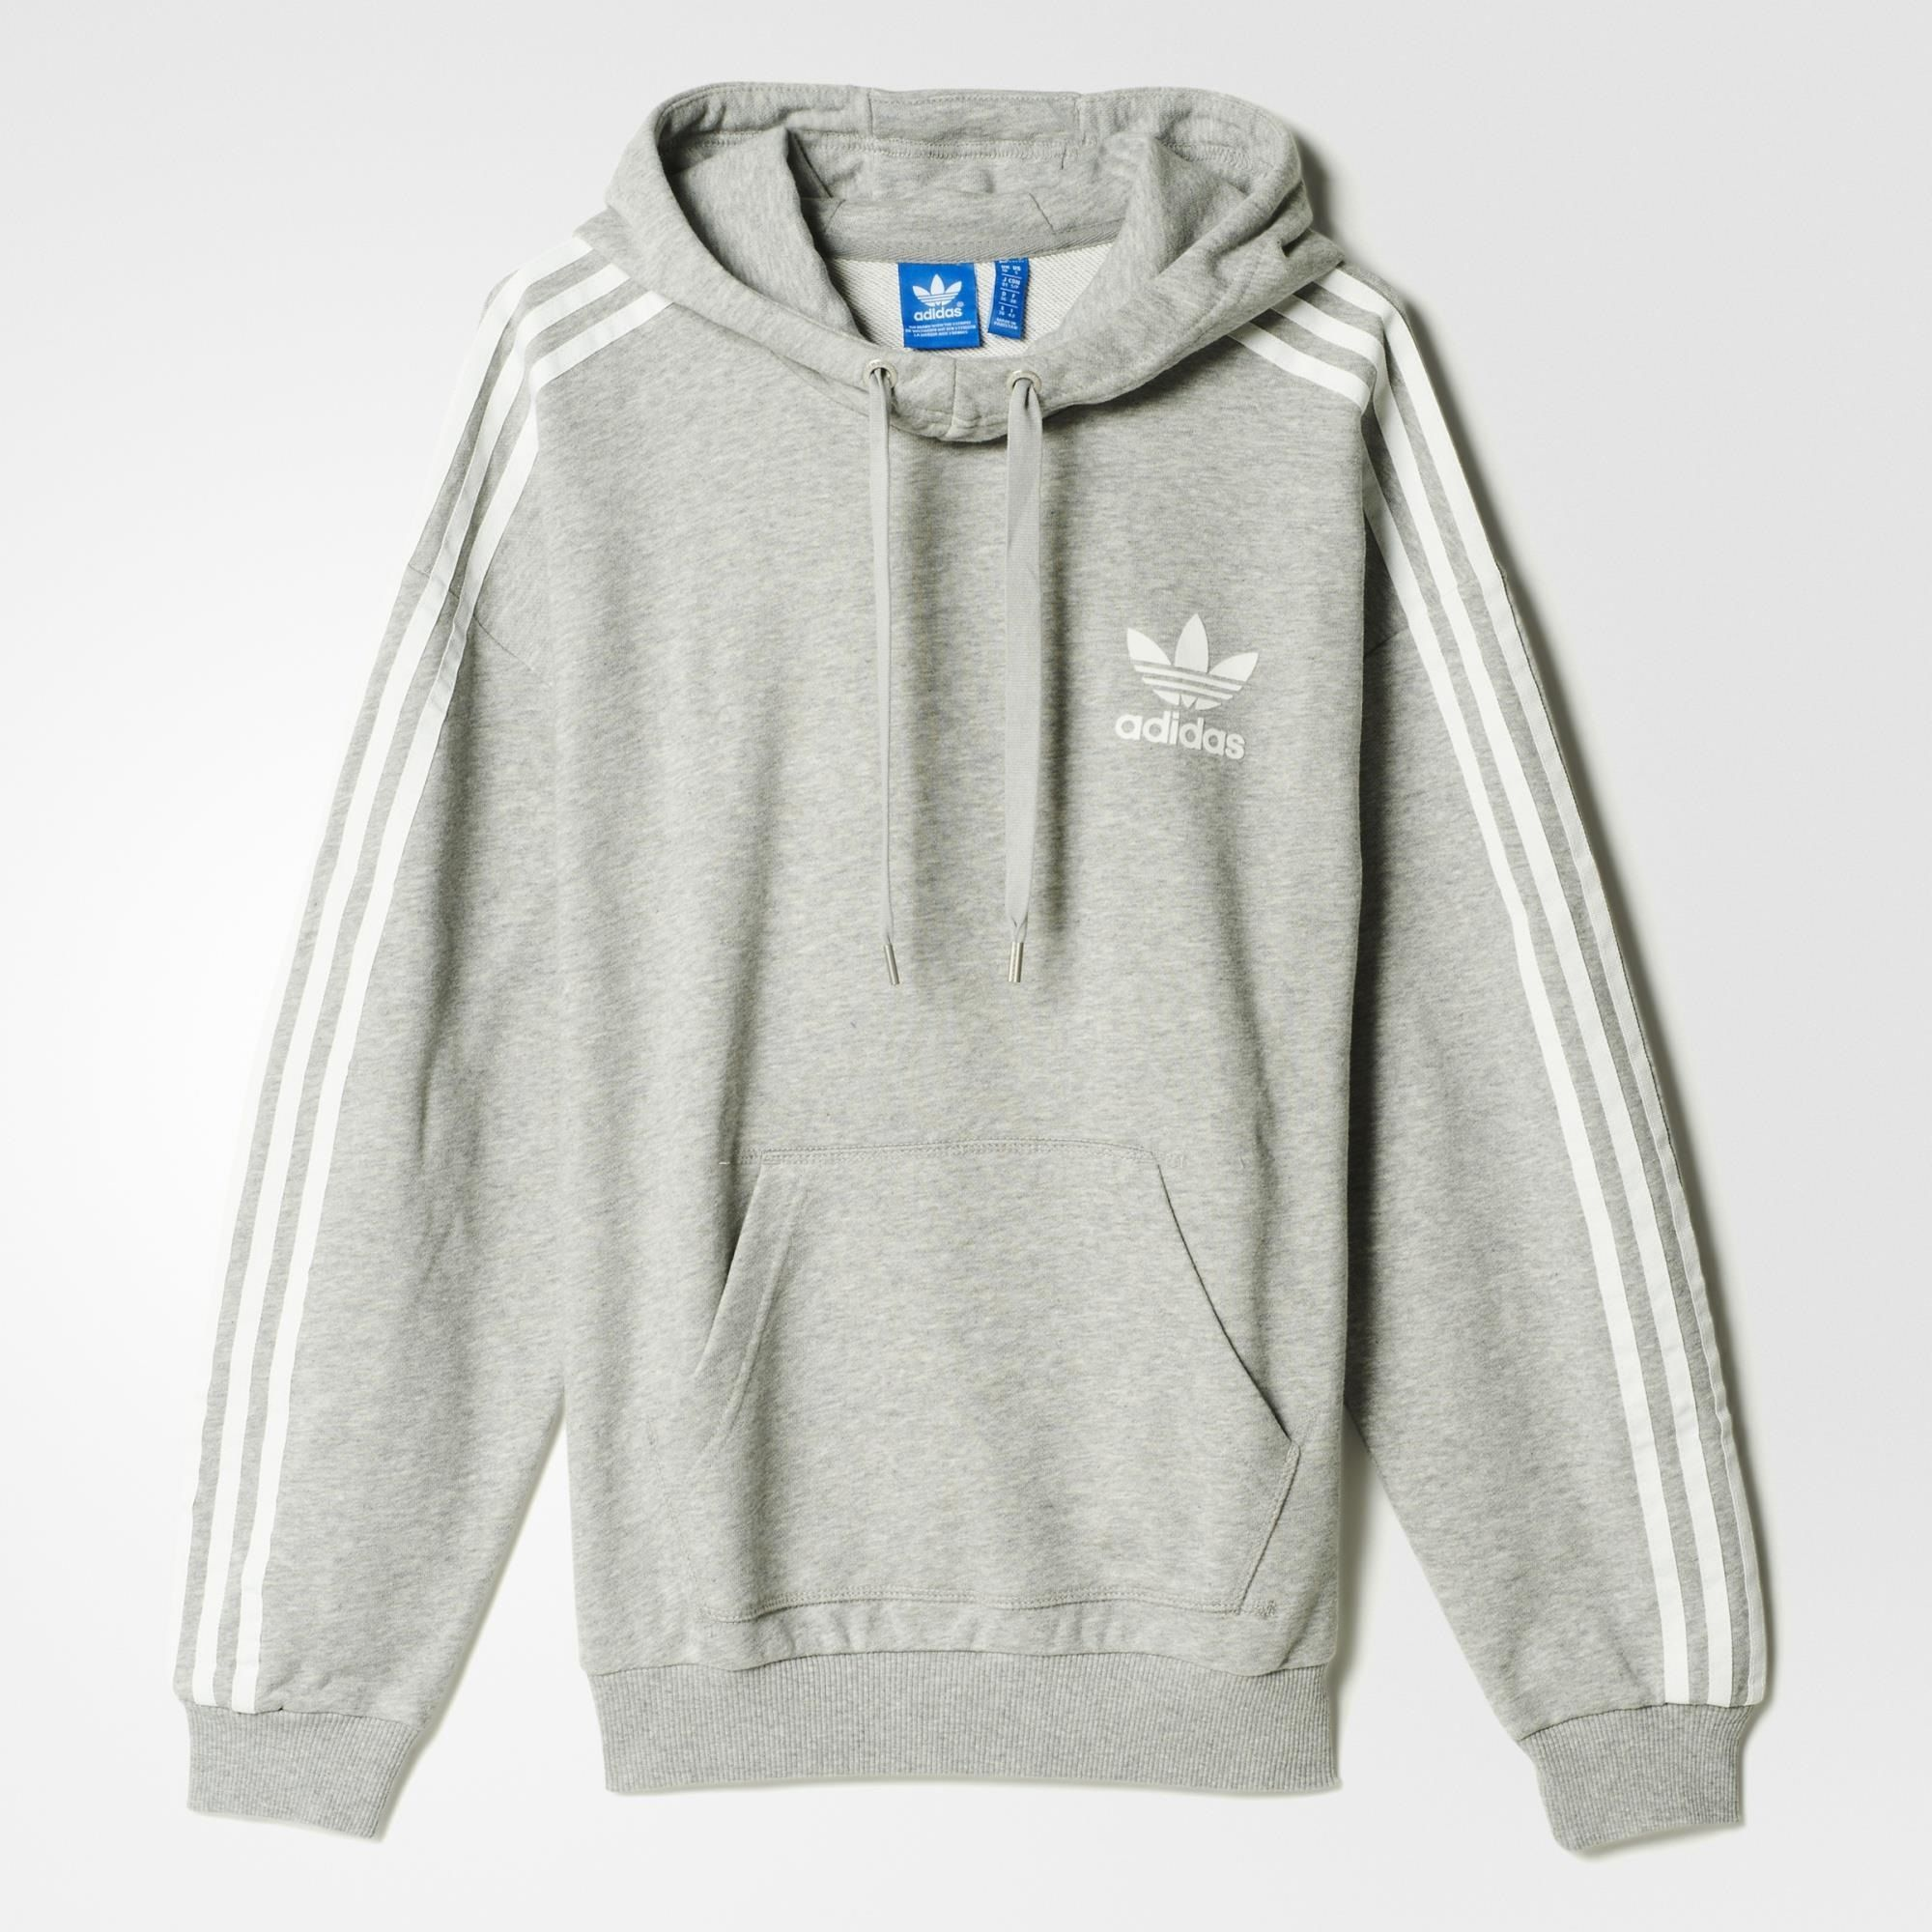 adidas 3 stripes hoodie grey adidas us style pinterest adidas gray and hoodie. Black Bedroom Furniture Sets. Home Design Ideas